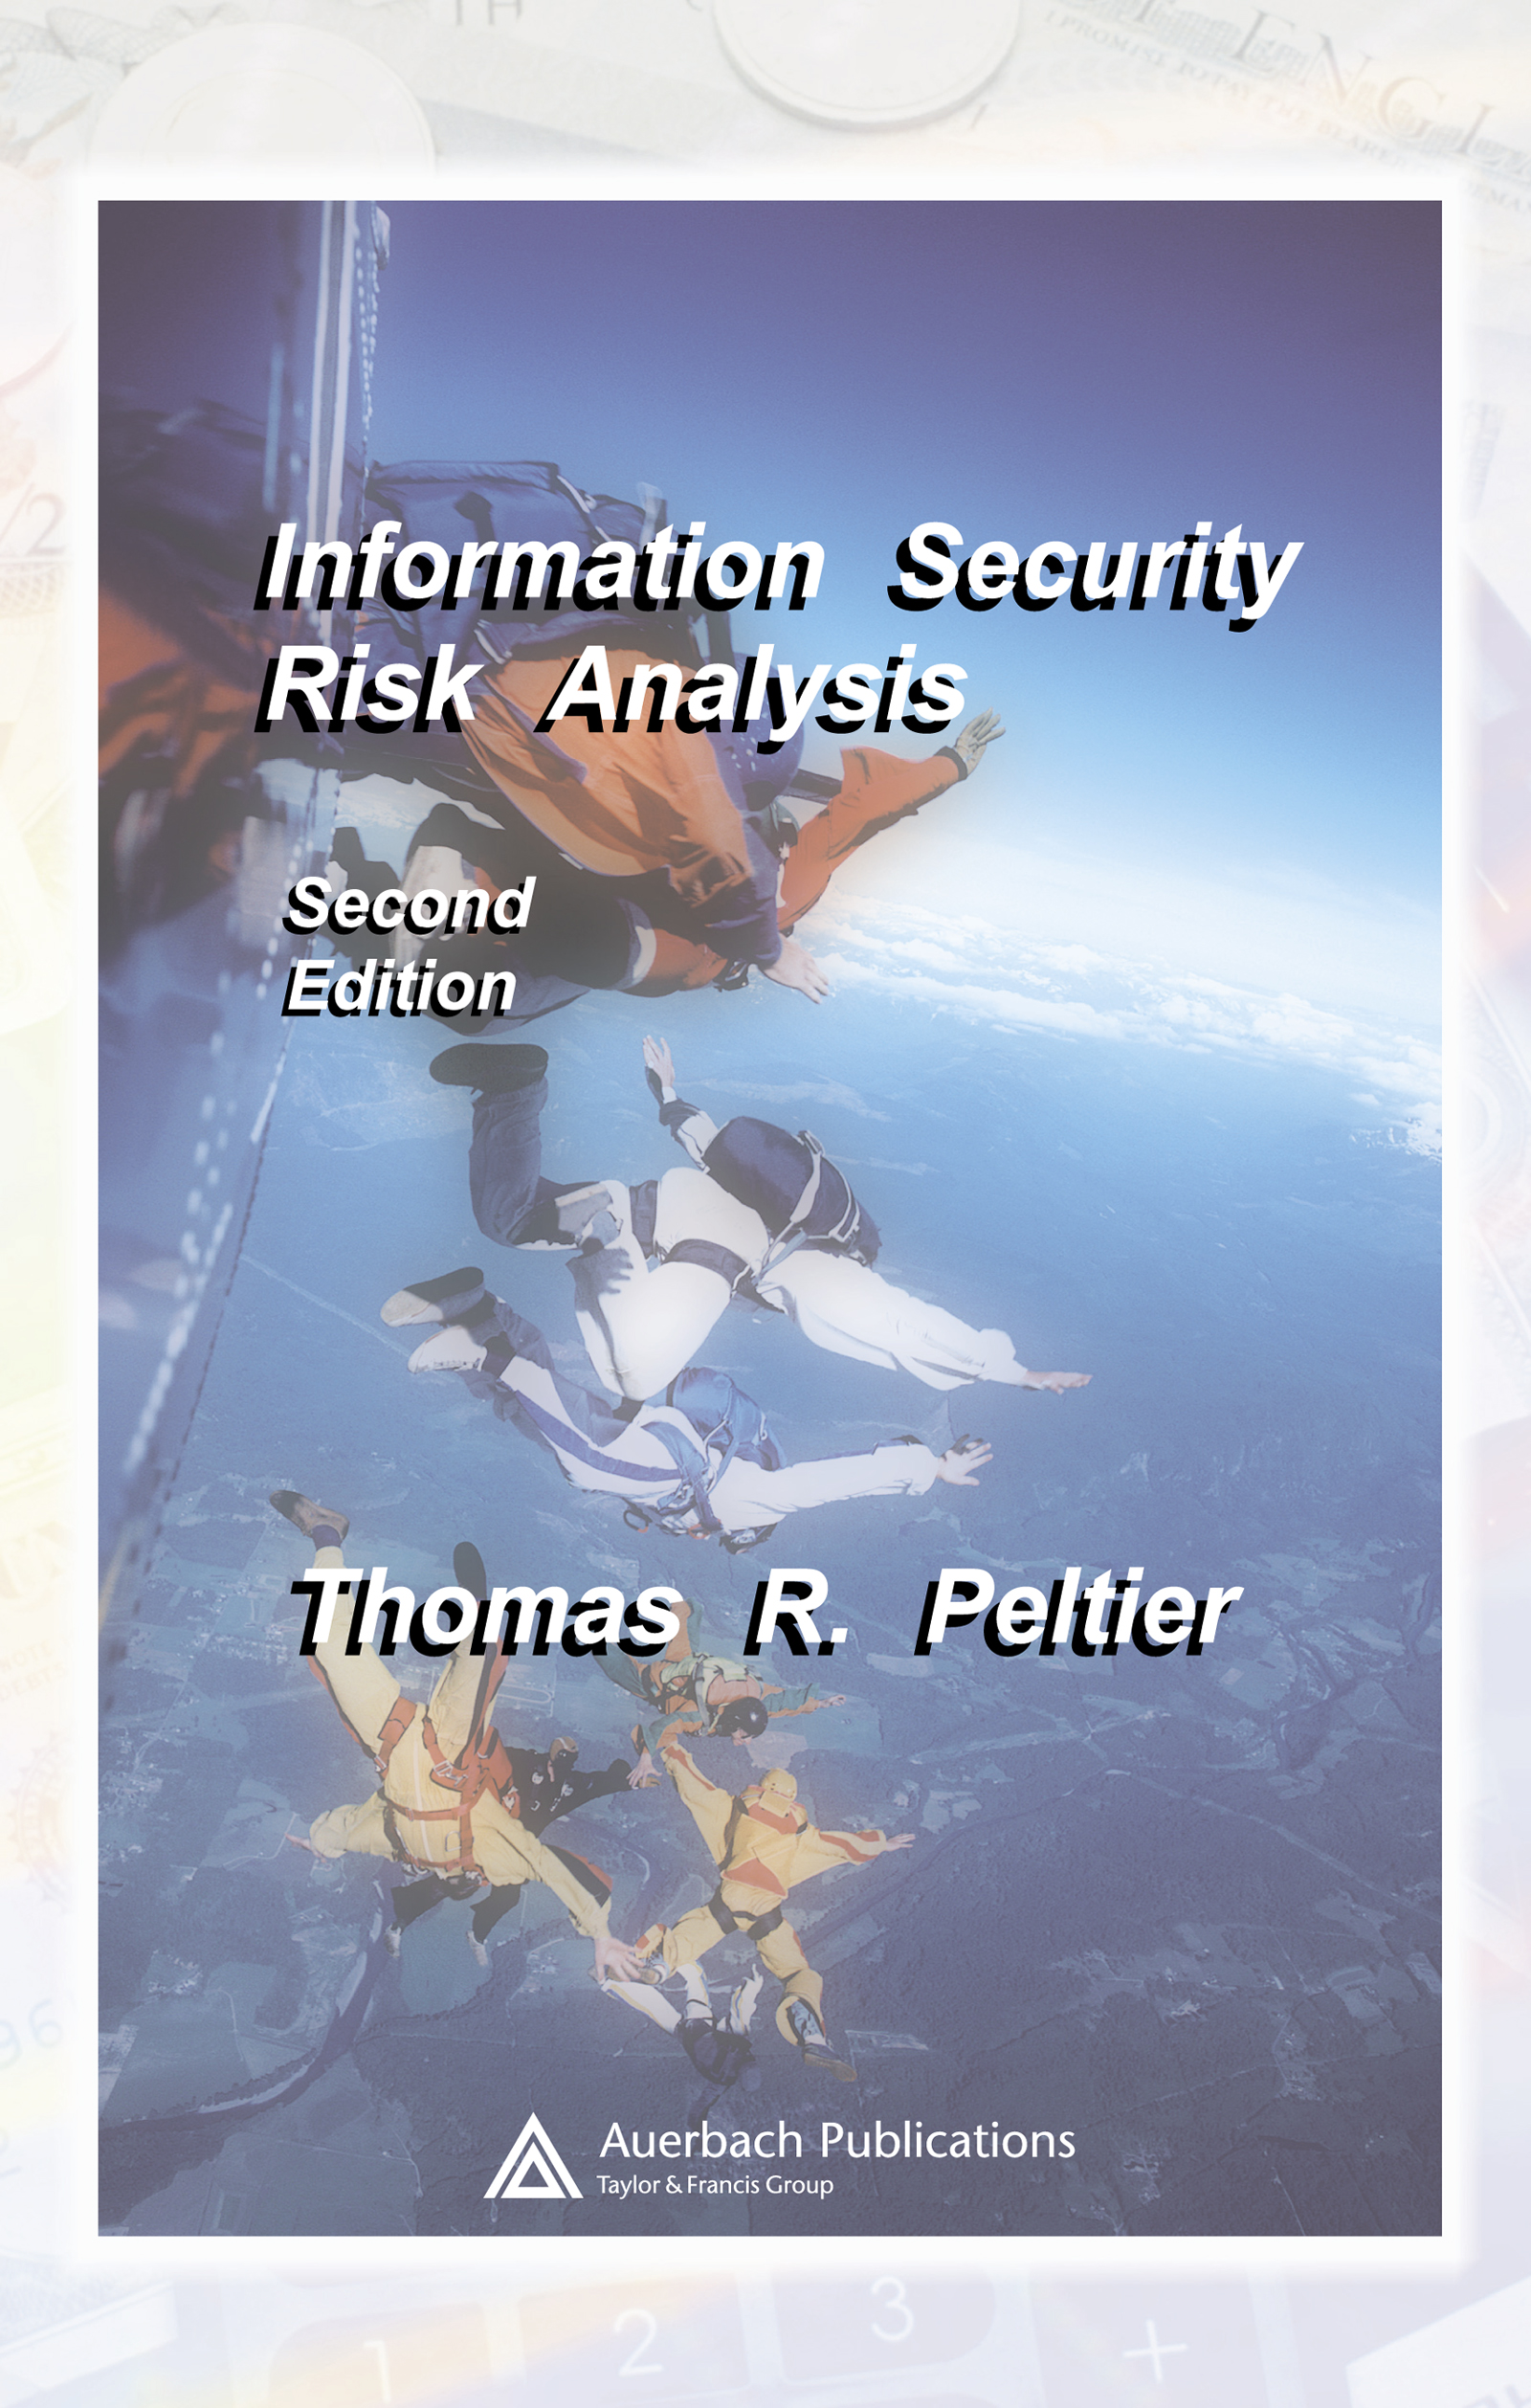 Download Ebook Information Security Risk Analysis (2nd ed.) by Thomas R. Peltier Pdf